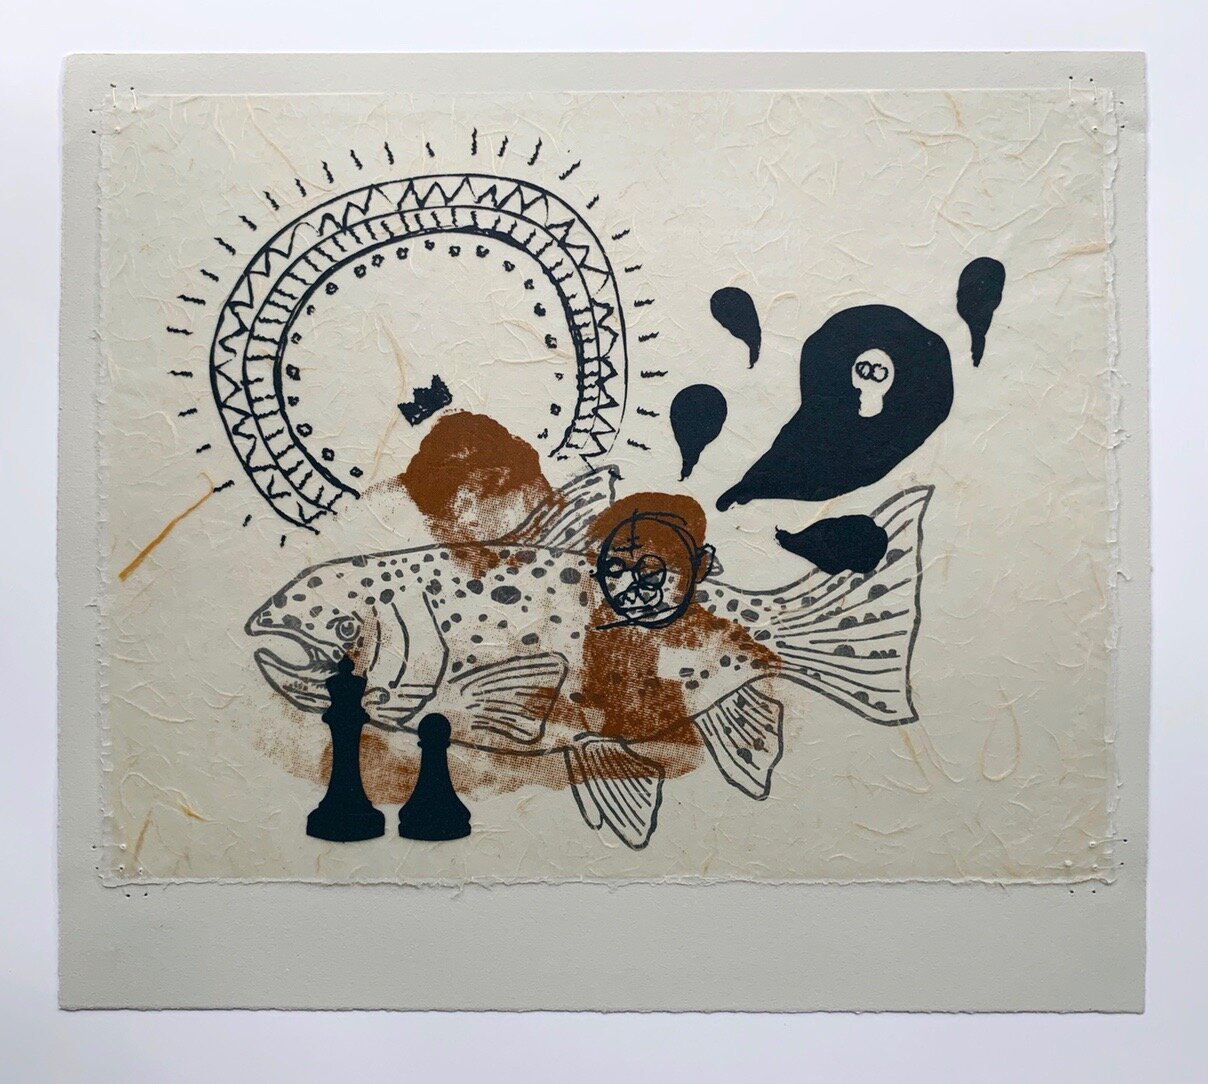 Under the tutelage of JF-3, serigraphy, waxed Japanese paper, fishing line, and linocut, 2013